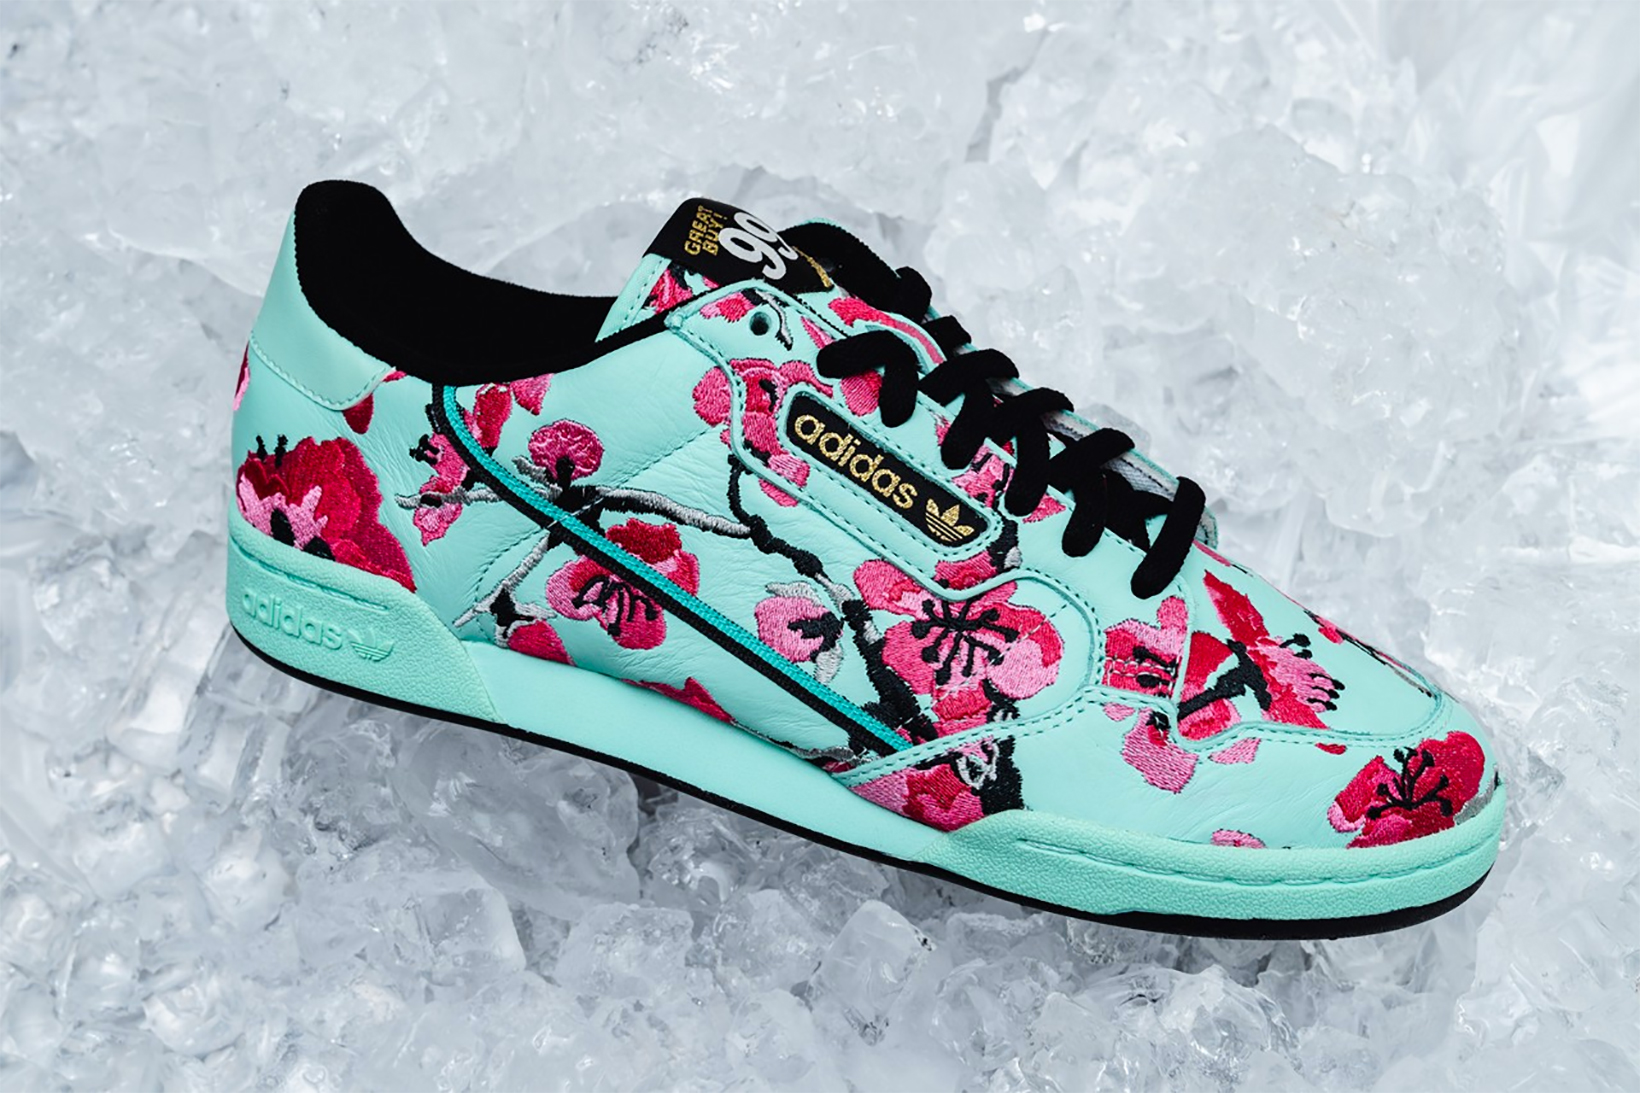 Adidas x AriZona Iced Tea sneakers